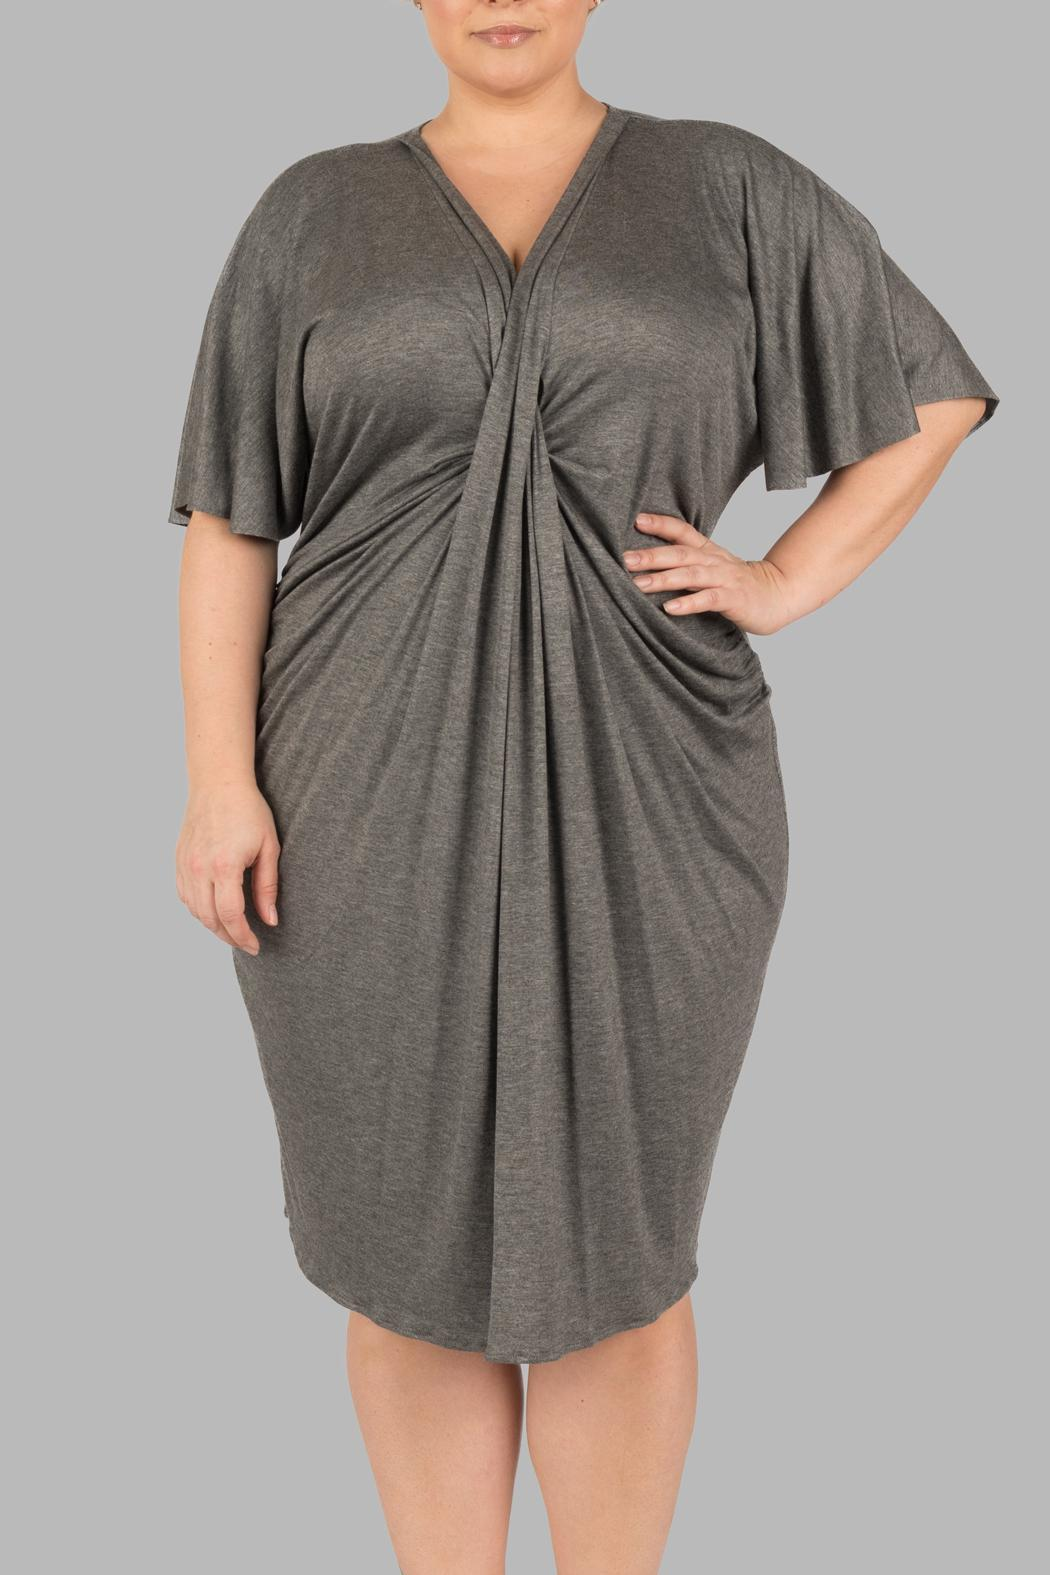 Yona New York Grey Kimono Dress - Front Cropped Image